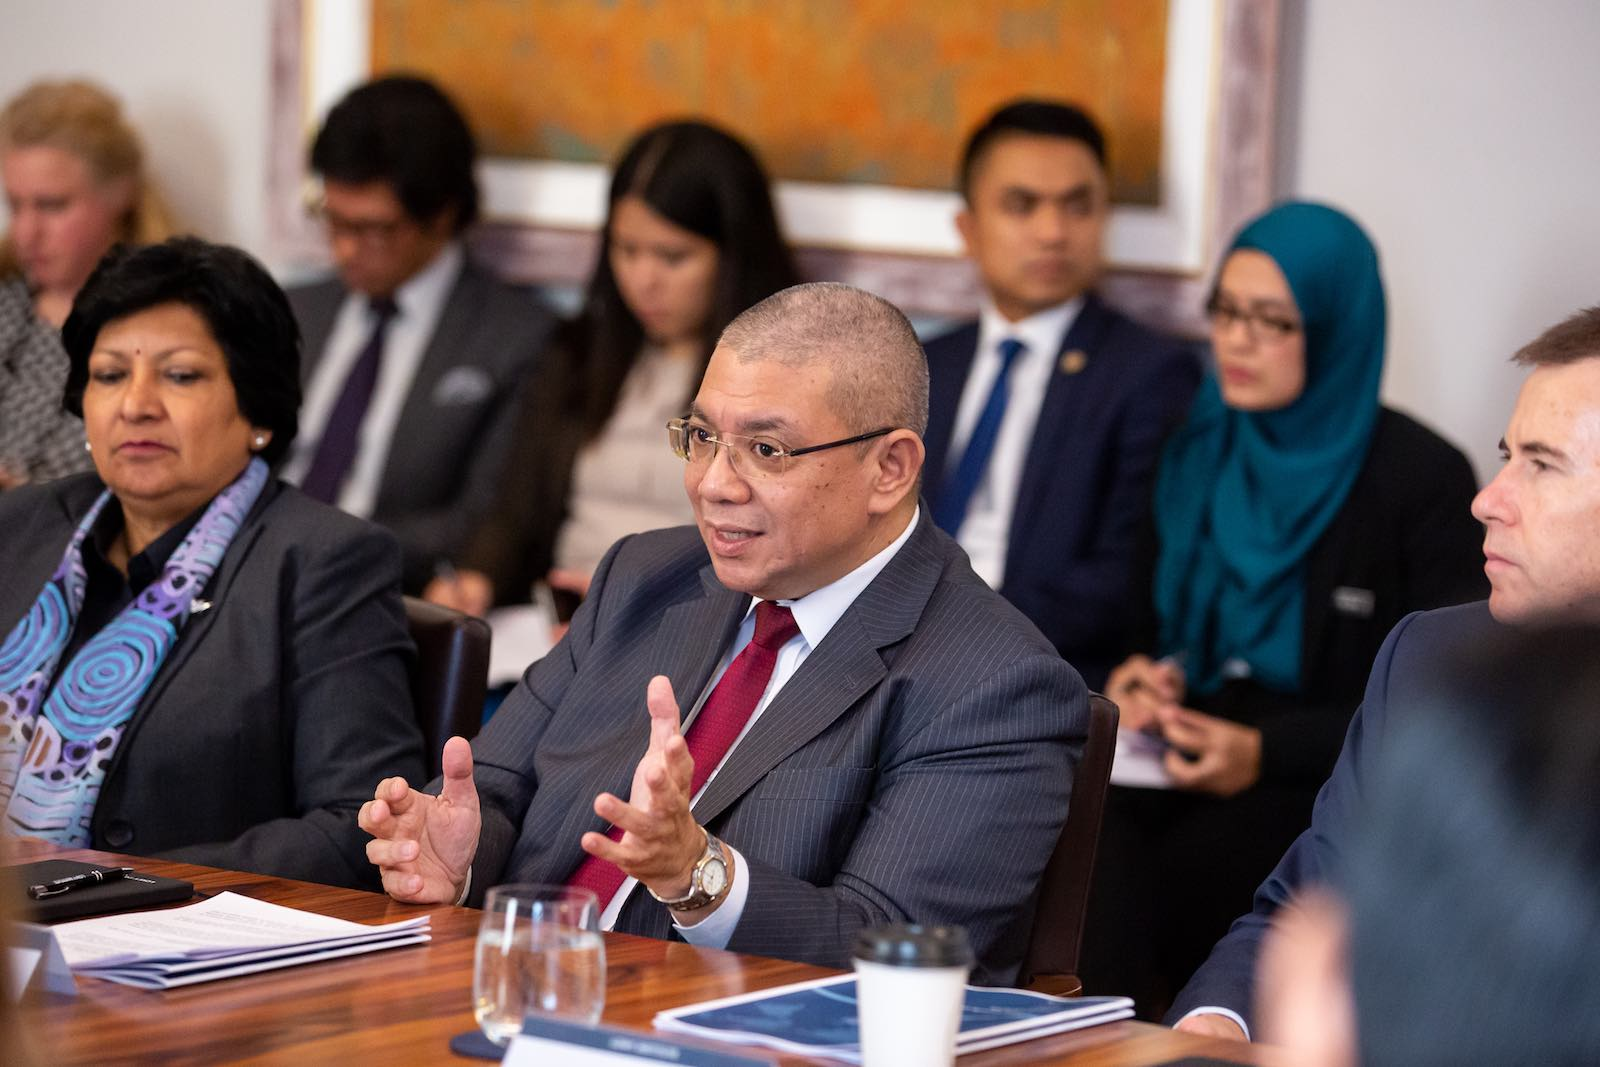 Malaysia's Foreign Minister Saifuddin Abdullah at a Lowy Institute roundtable in Sydney (Photos: Peter Morris/Sydney Heads)